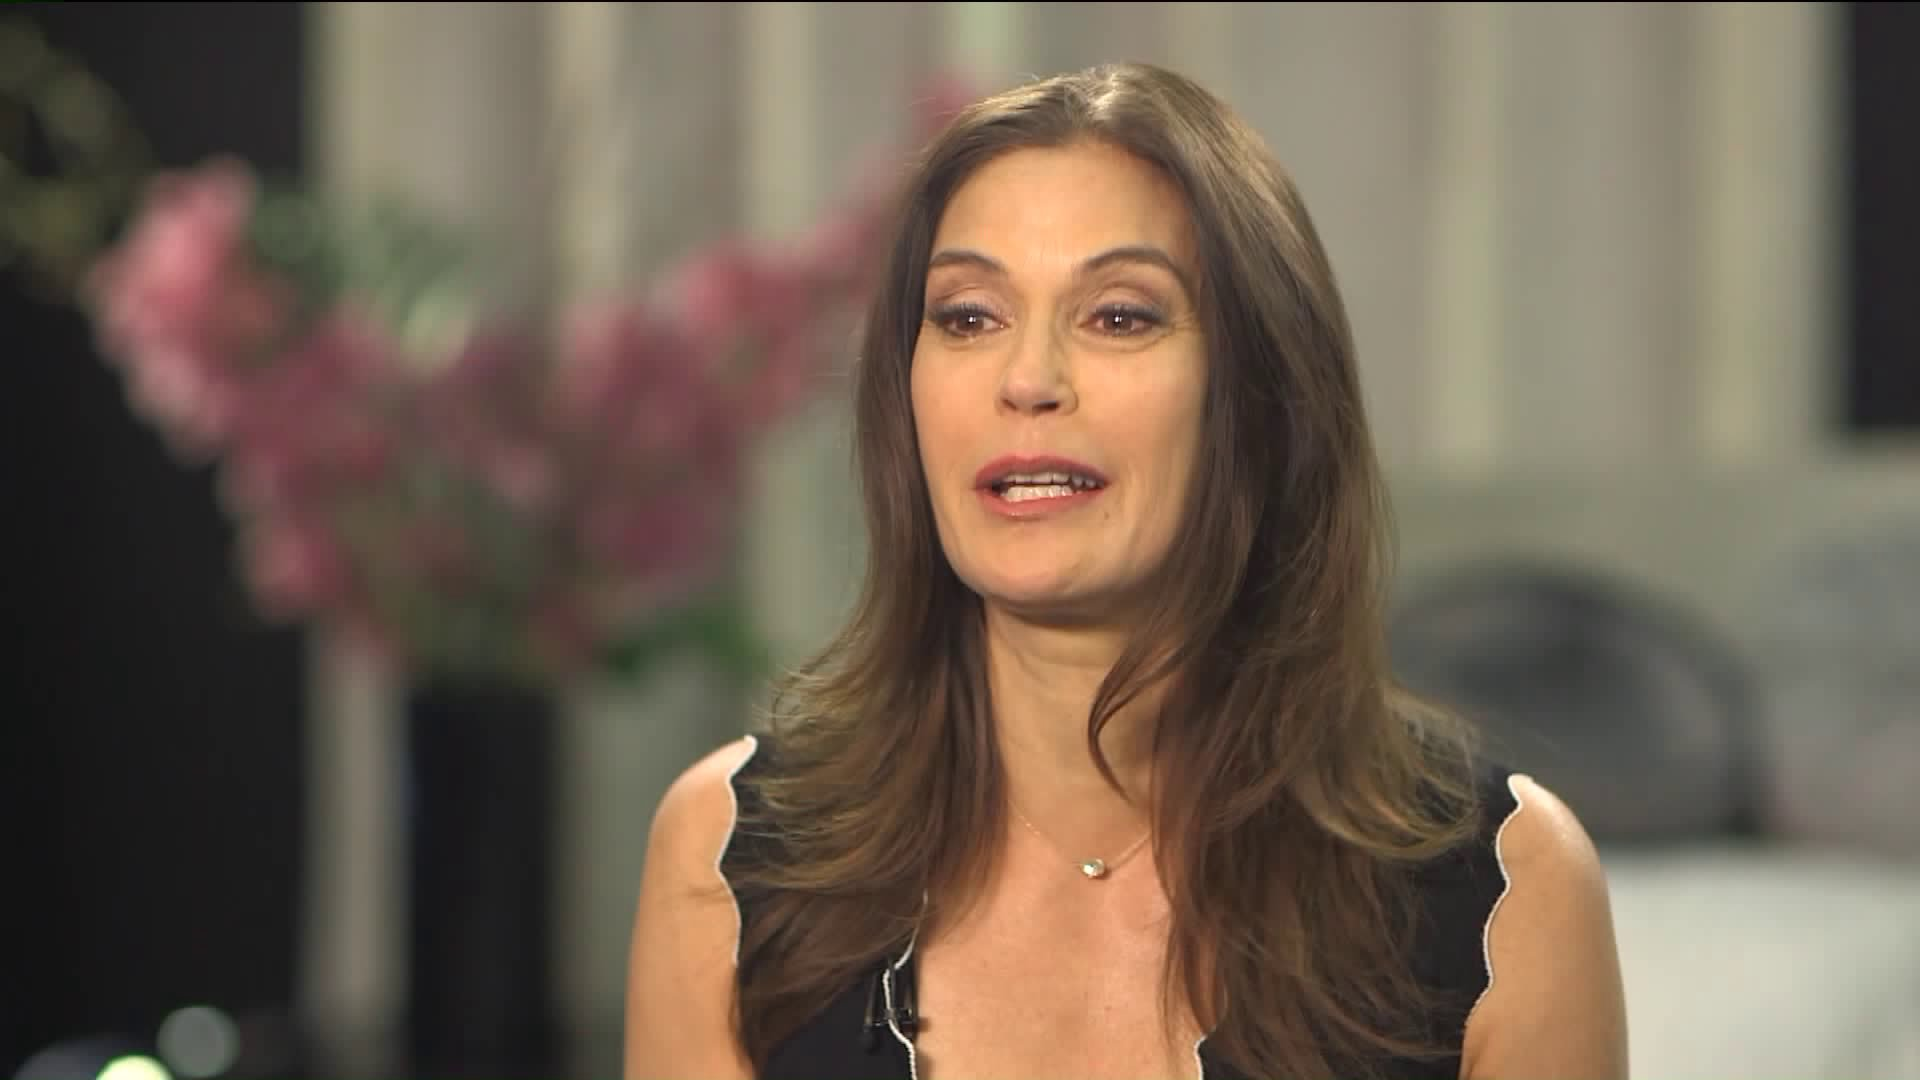 Teri Hatcher is seen during an interview with Sam Rubin on March 8, 2018. (Credit: KTLA)